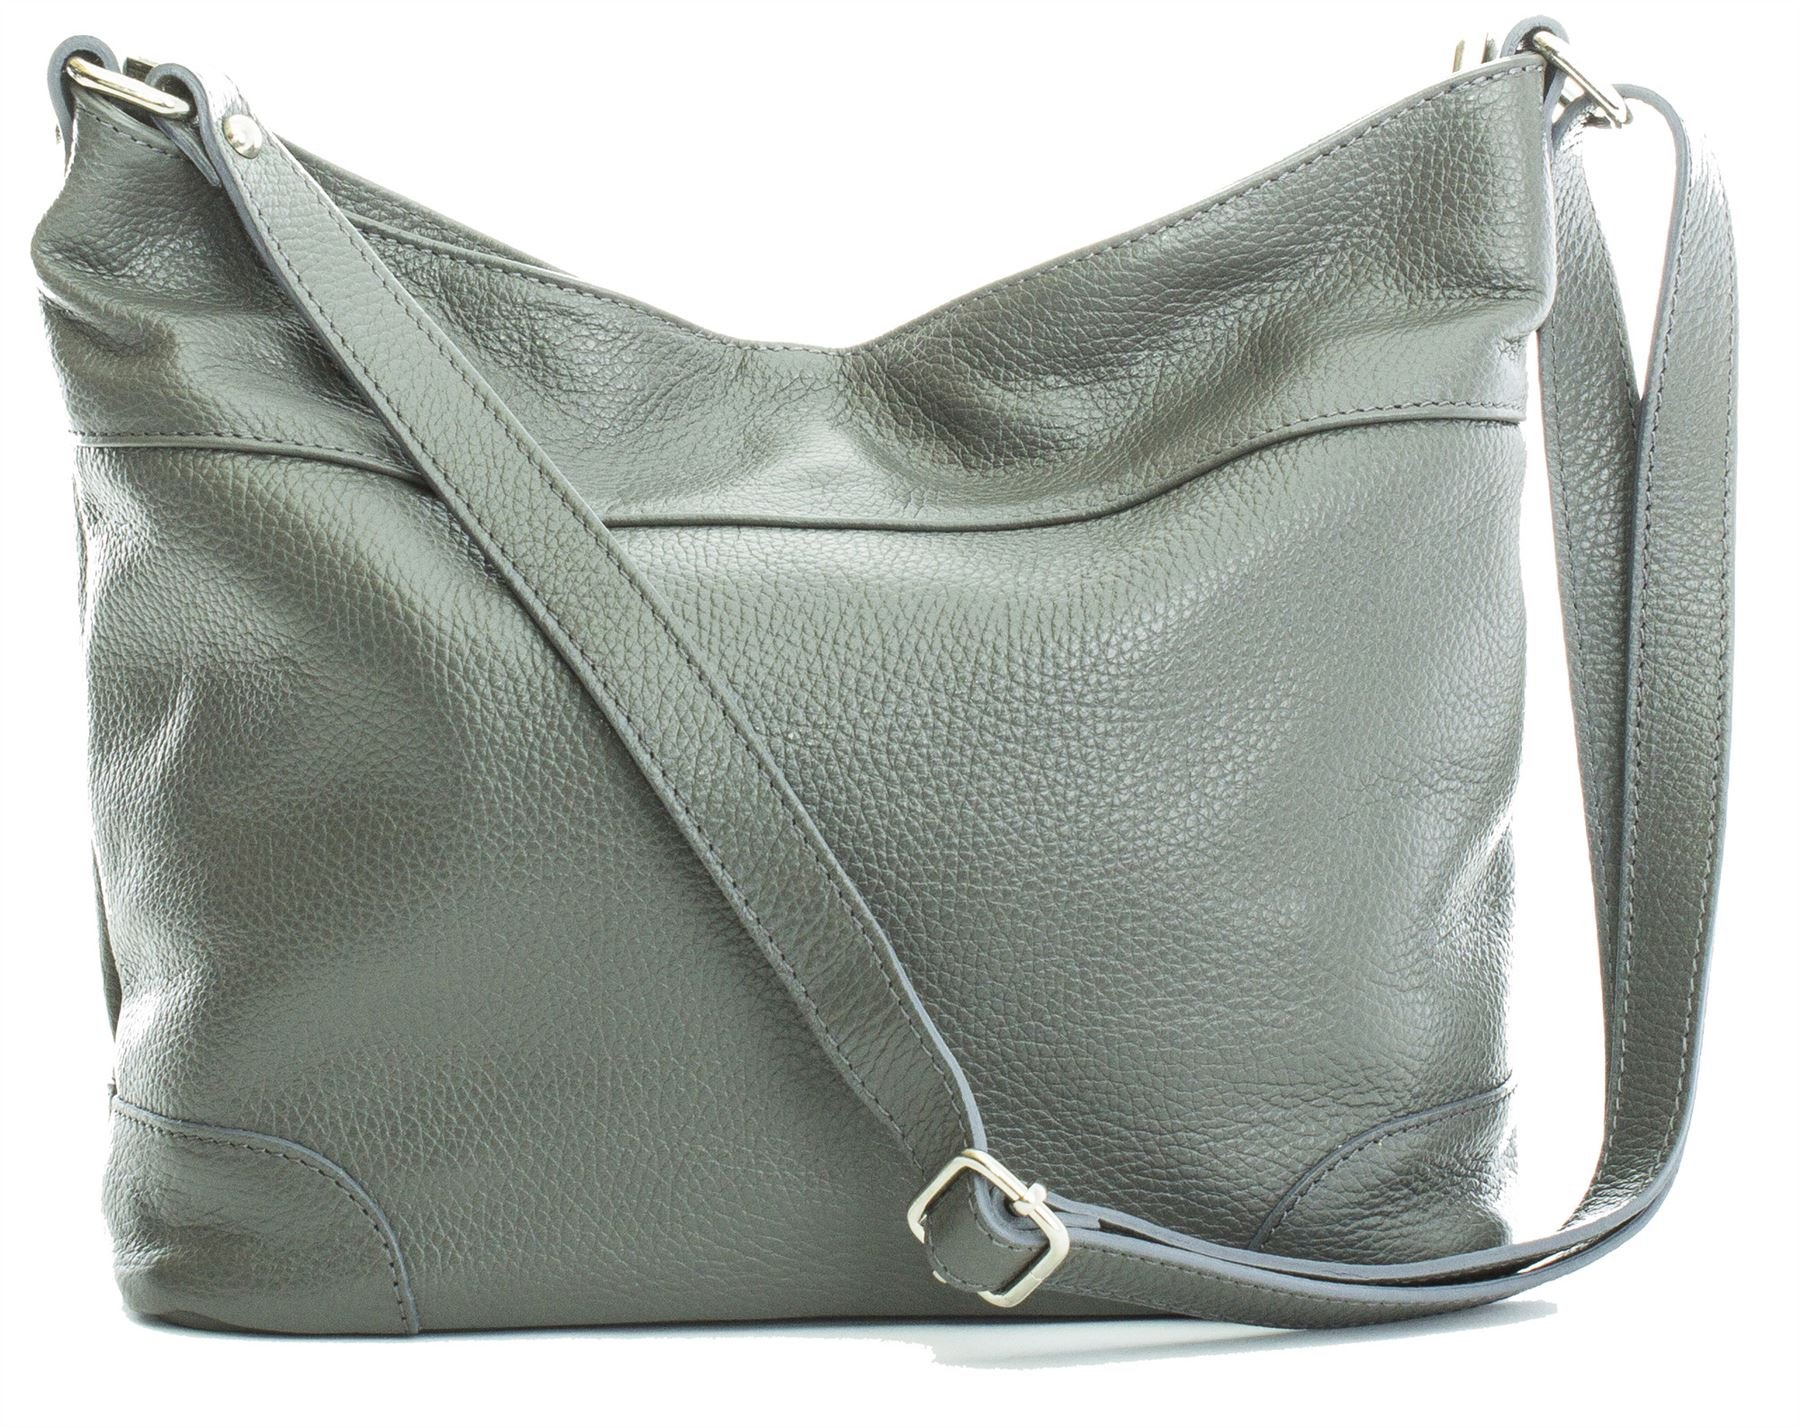 Big Handbag Shop Womens Genuine Leather Designer Medium Hobo Shoulder bag (Grey)